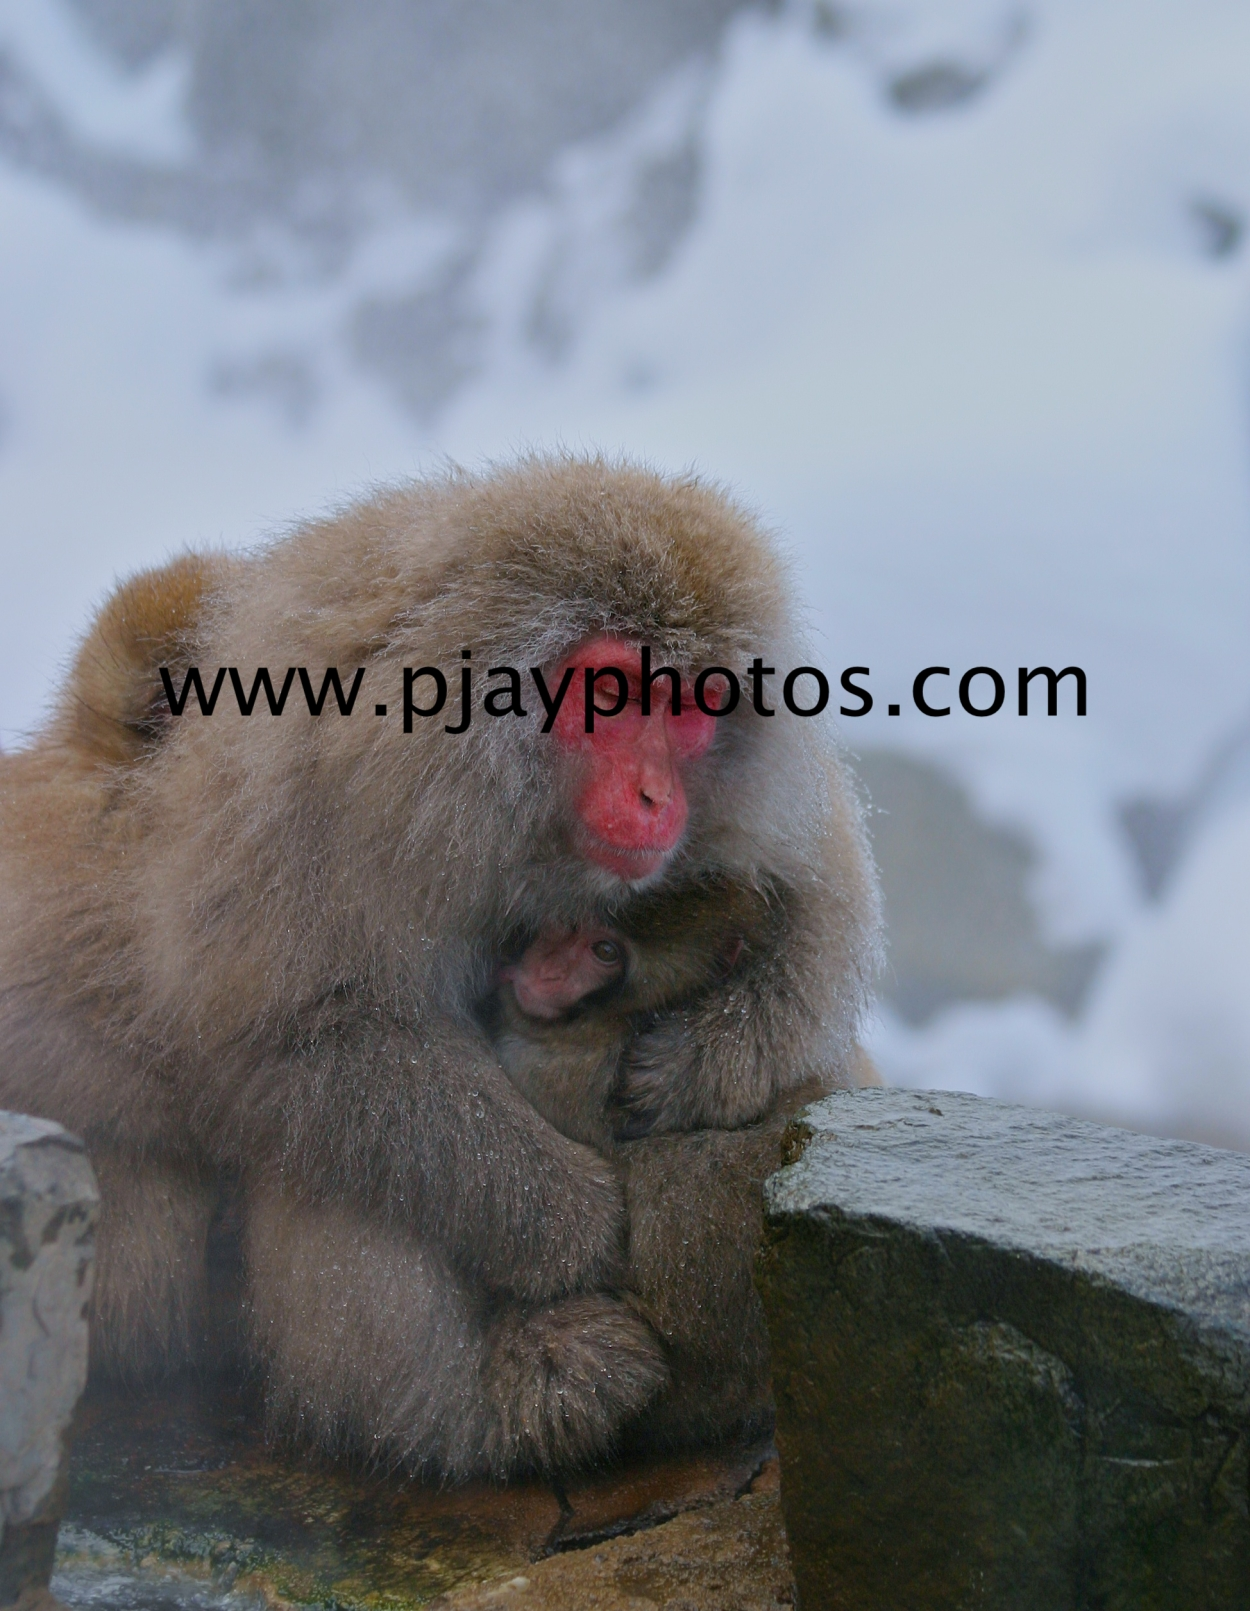 japanese macacque, macacque, monkey, snow monkey, mammal, japan, nature, wildlife, photograph